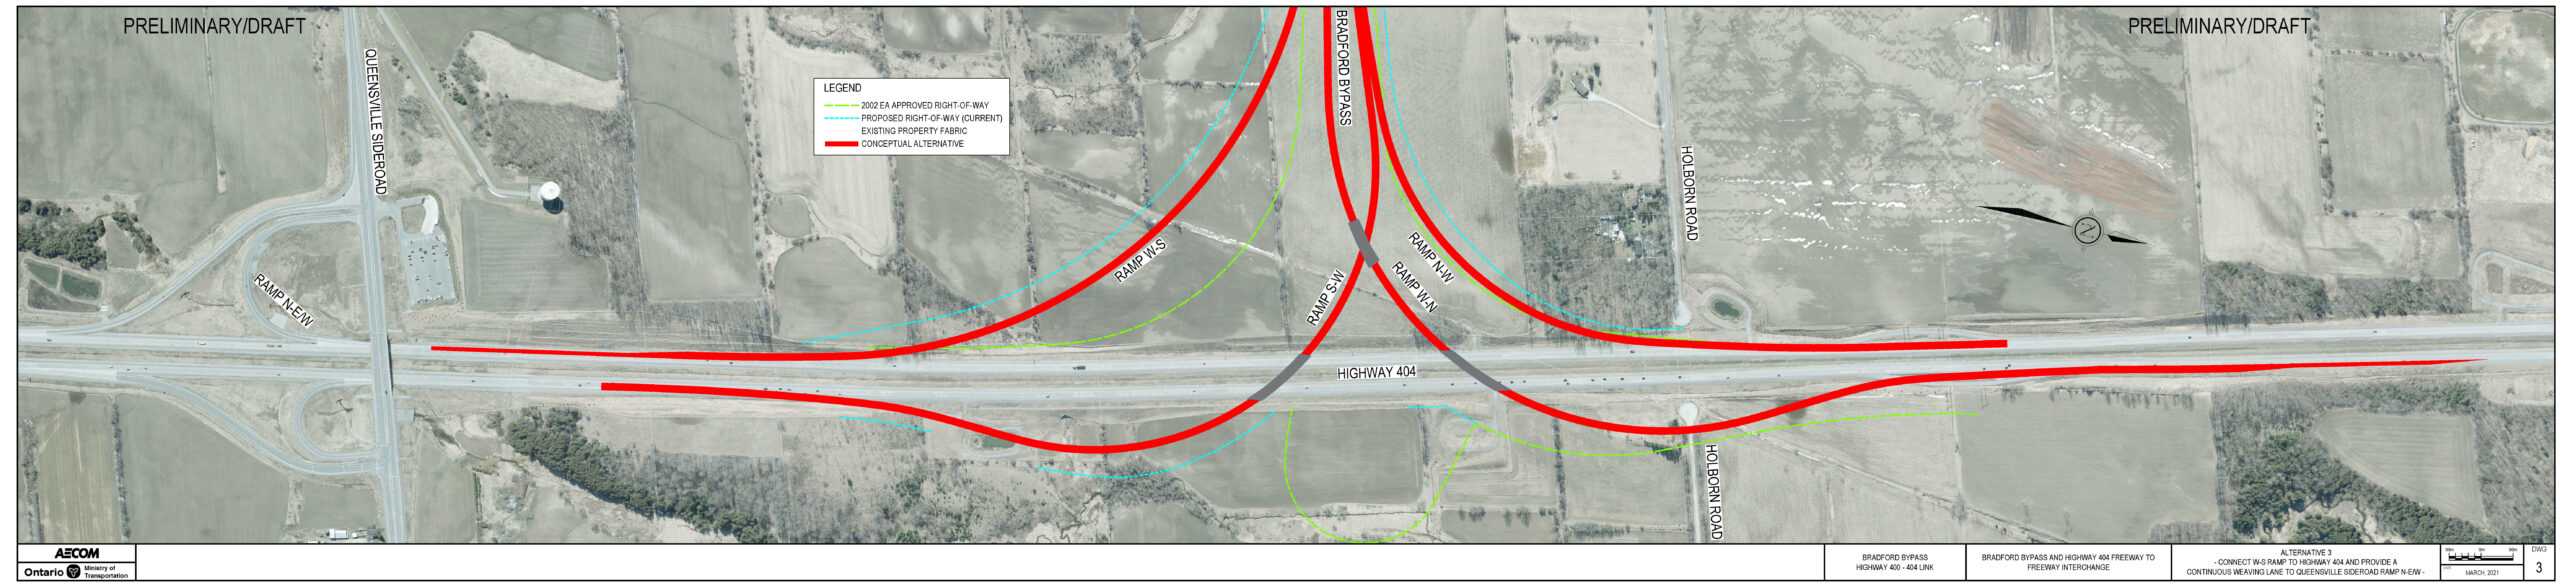 Highway 404 Interchange Refinement Alternative 3 with one lane extension from Bradford Bypass to Connect with Existing Queensville Sideroad Ramp